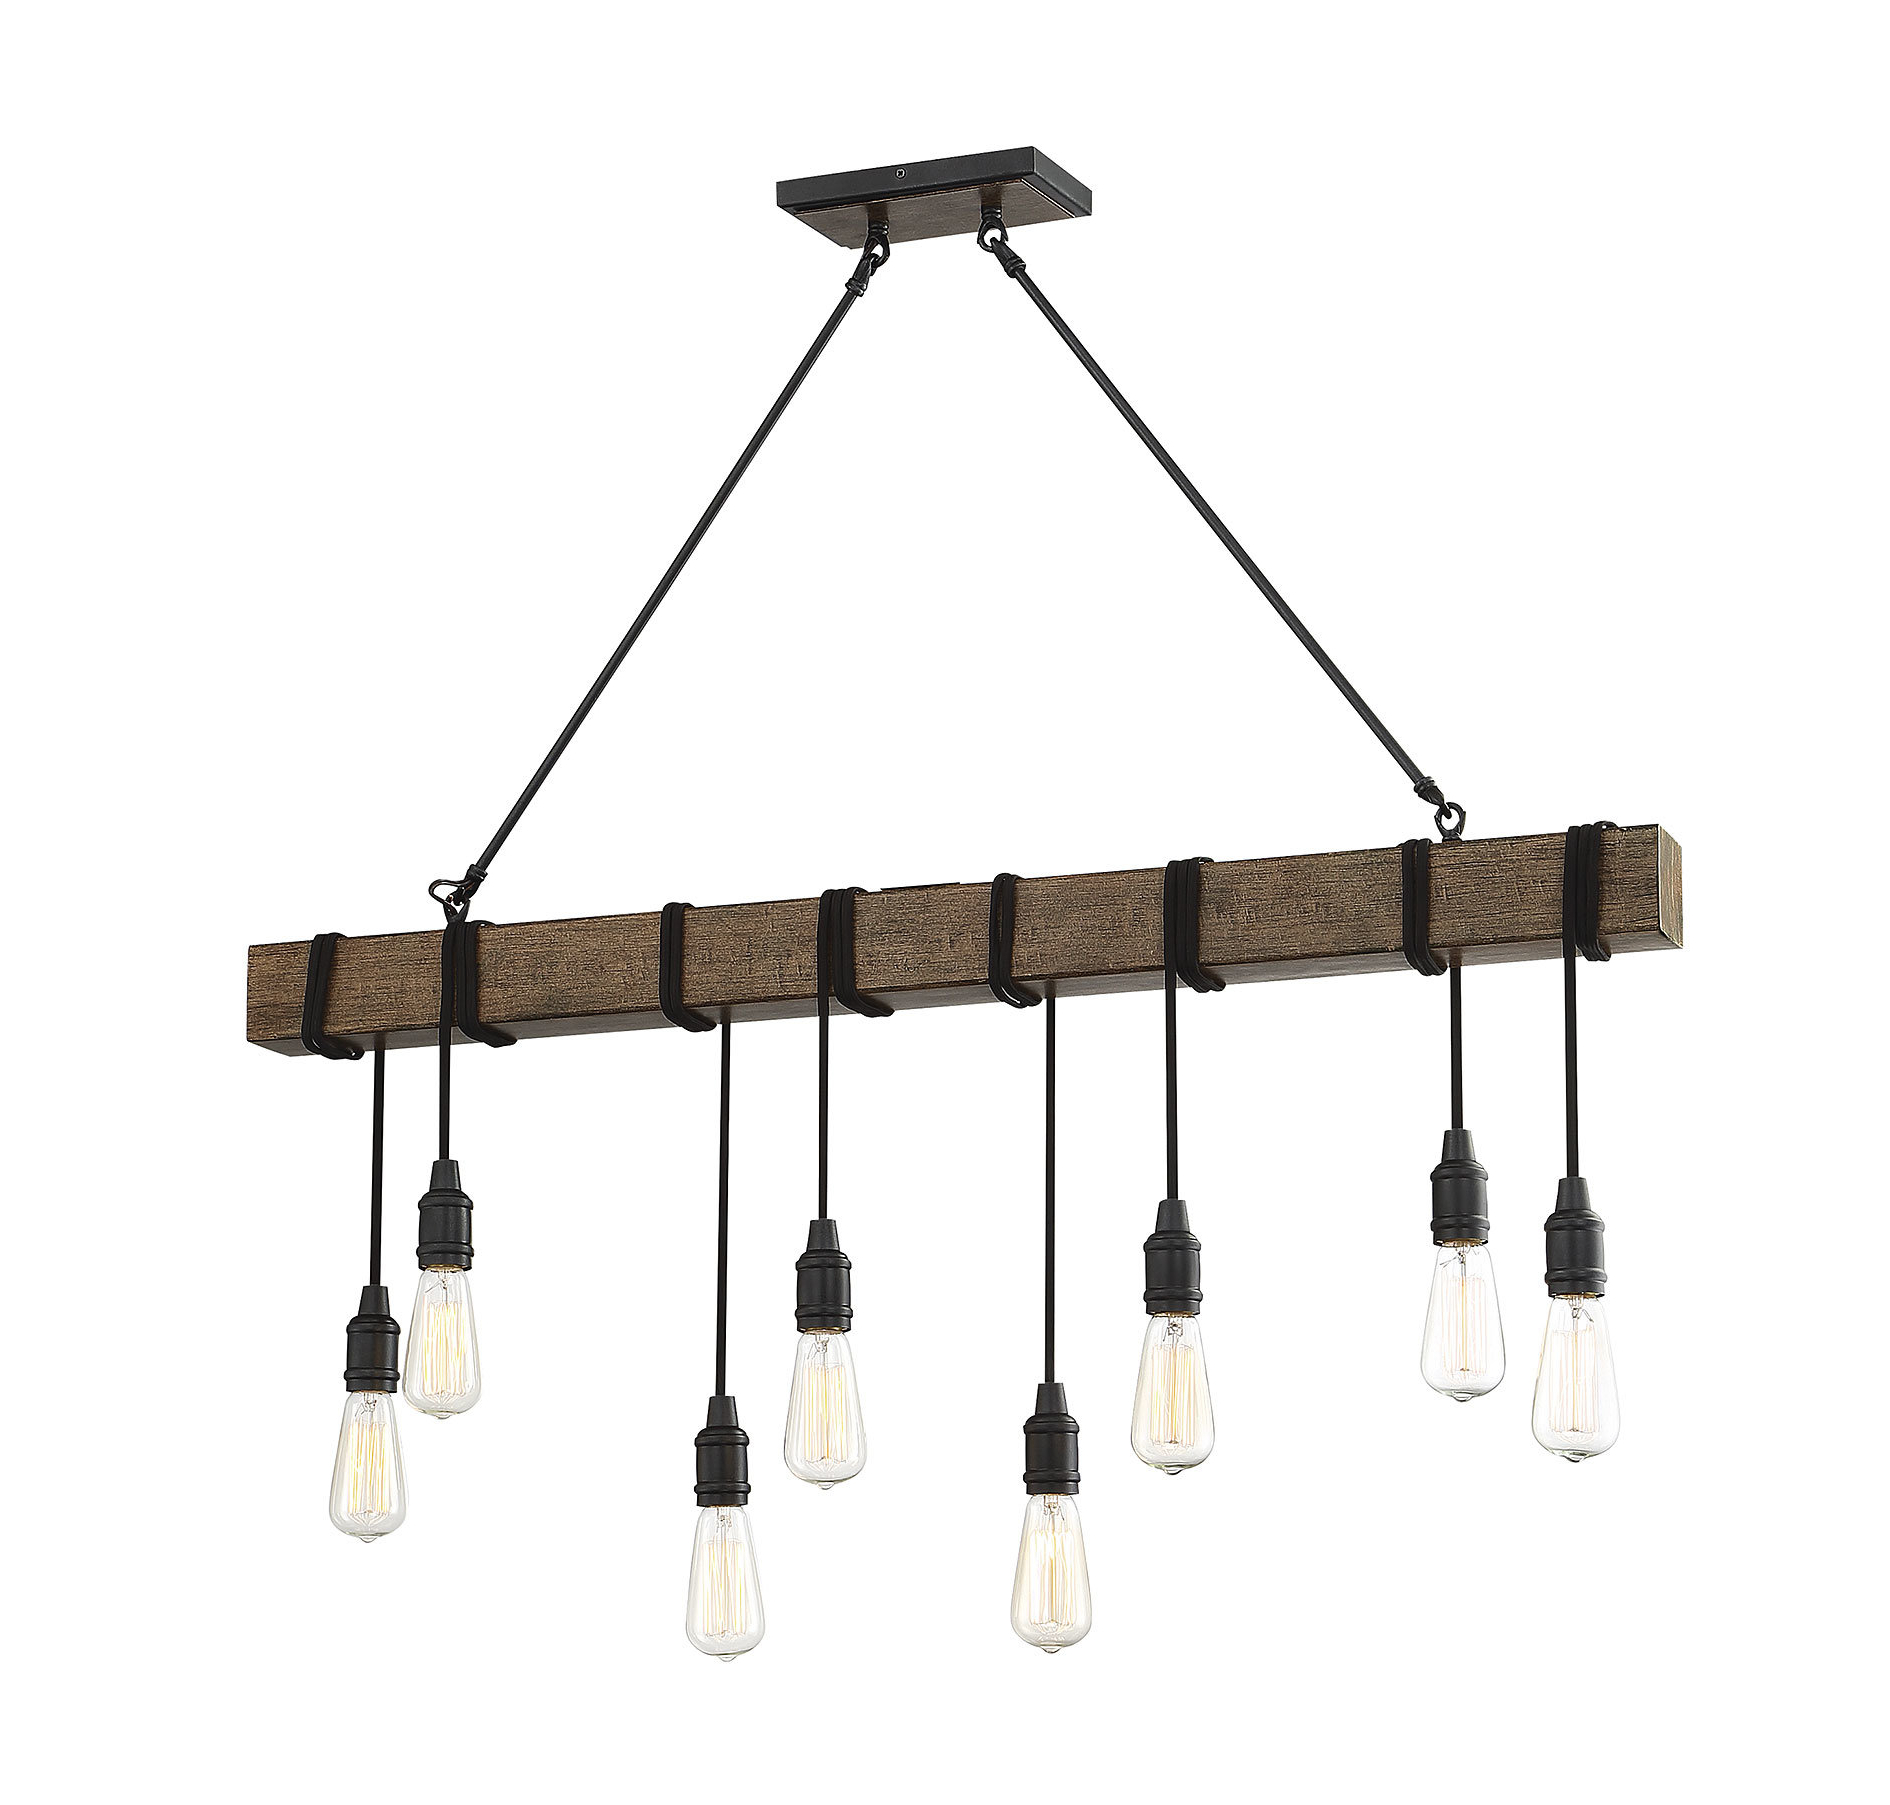 2019 Novogratz Vintage 5 Light Kitchen Island Bulb Pendants Regarding Gracie Oaks Wyckhoff 8 Light Kitchen Island Bulb Pendant (Gallery 18 of 20)